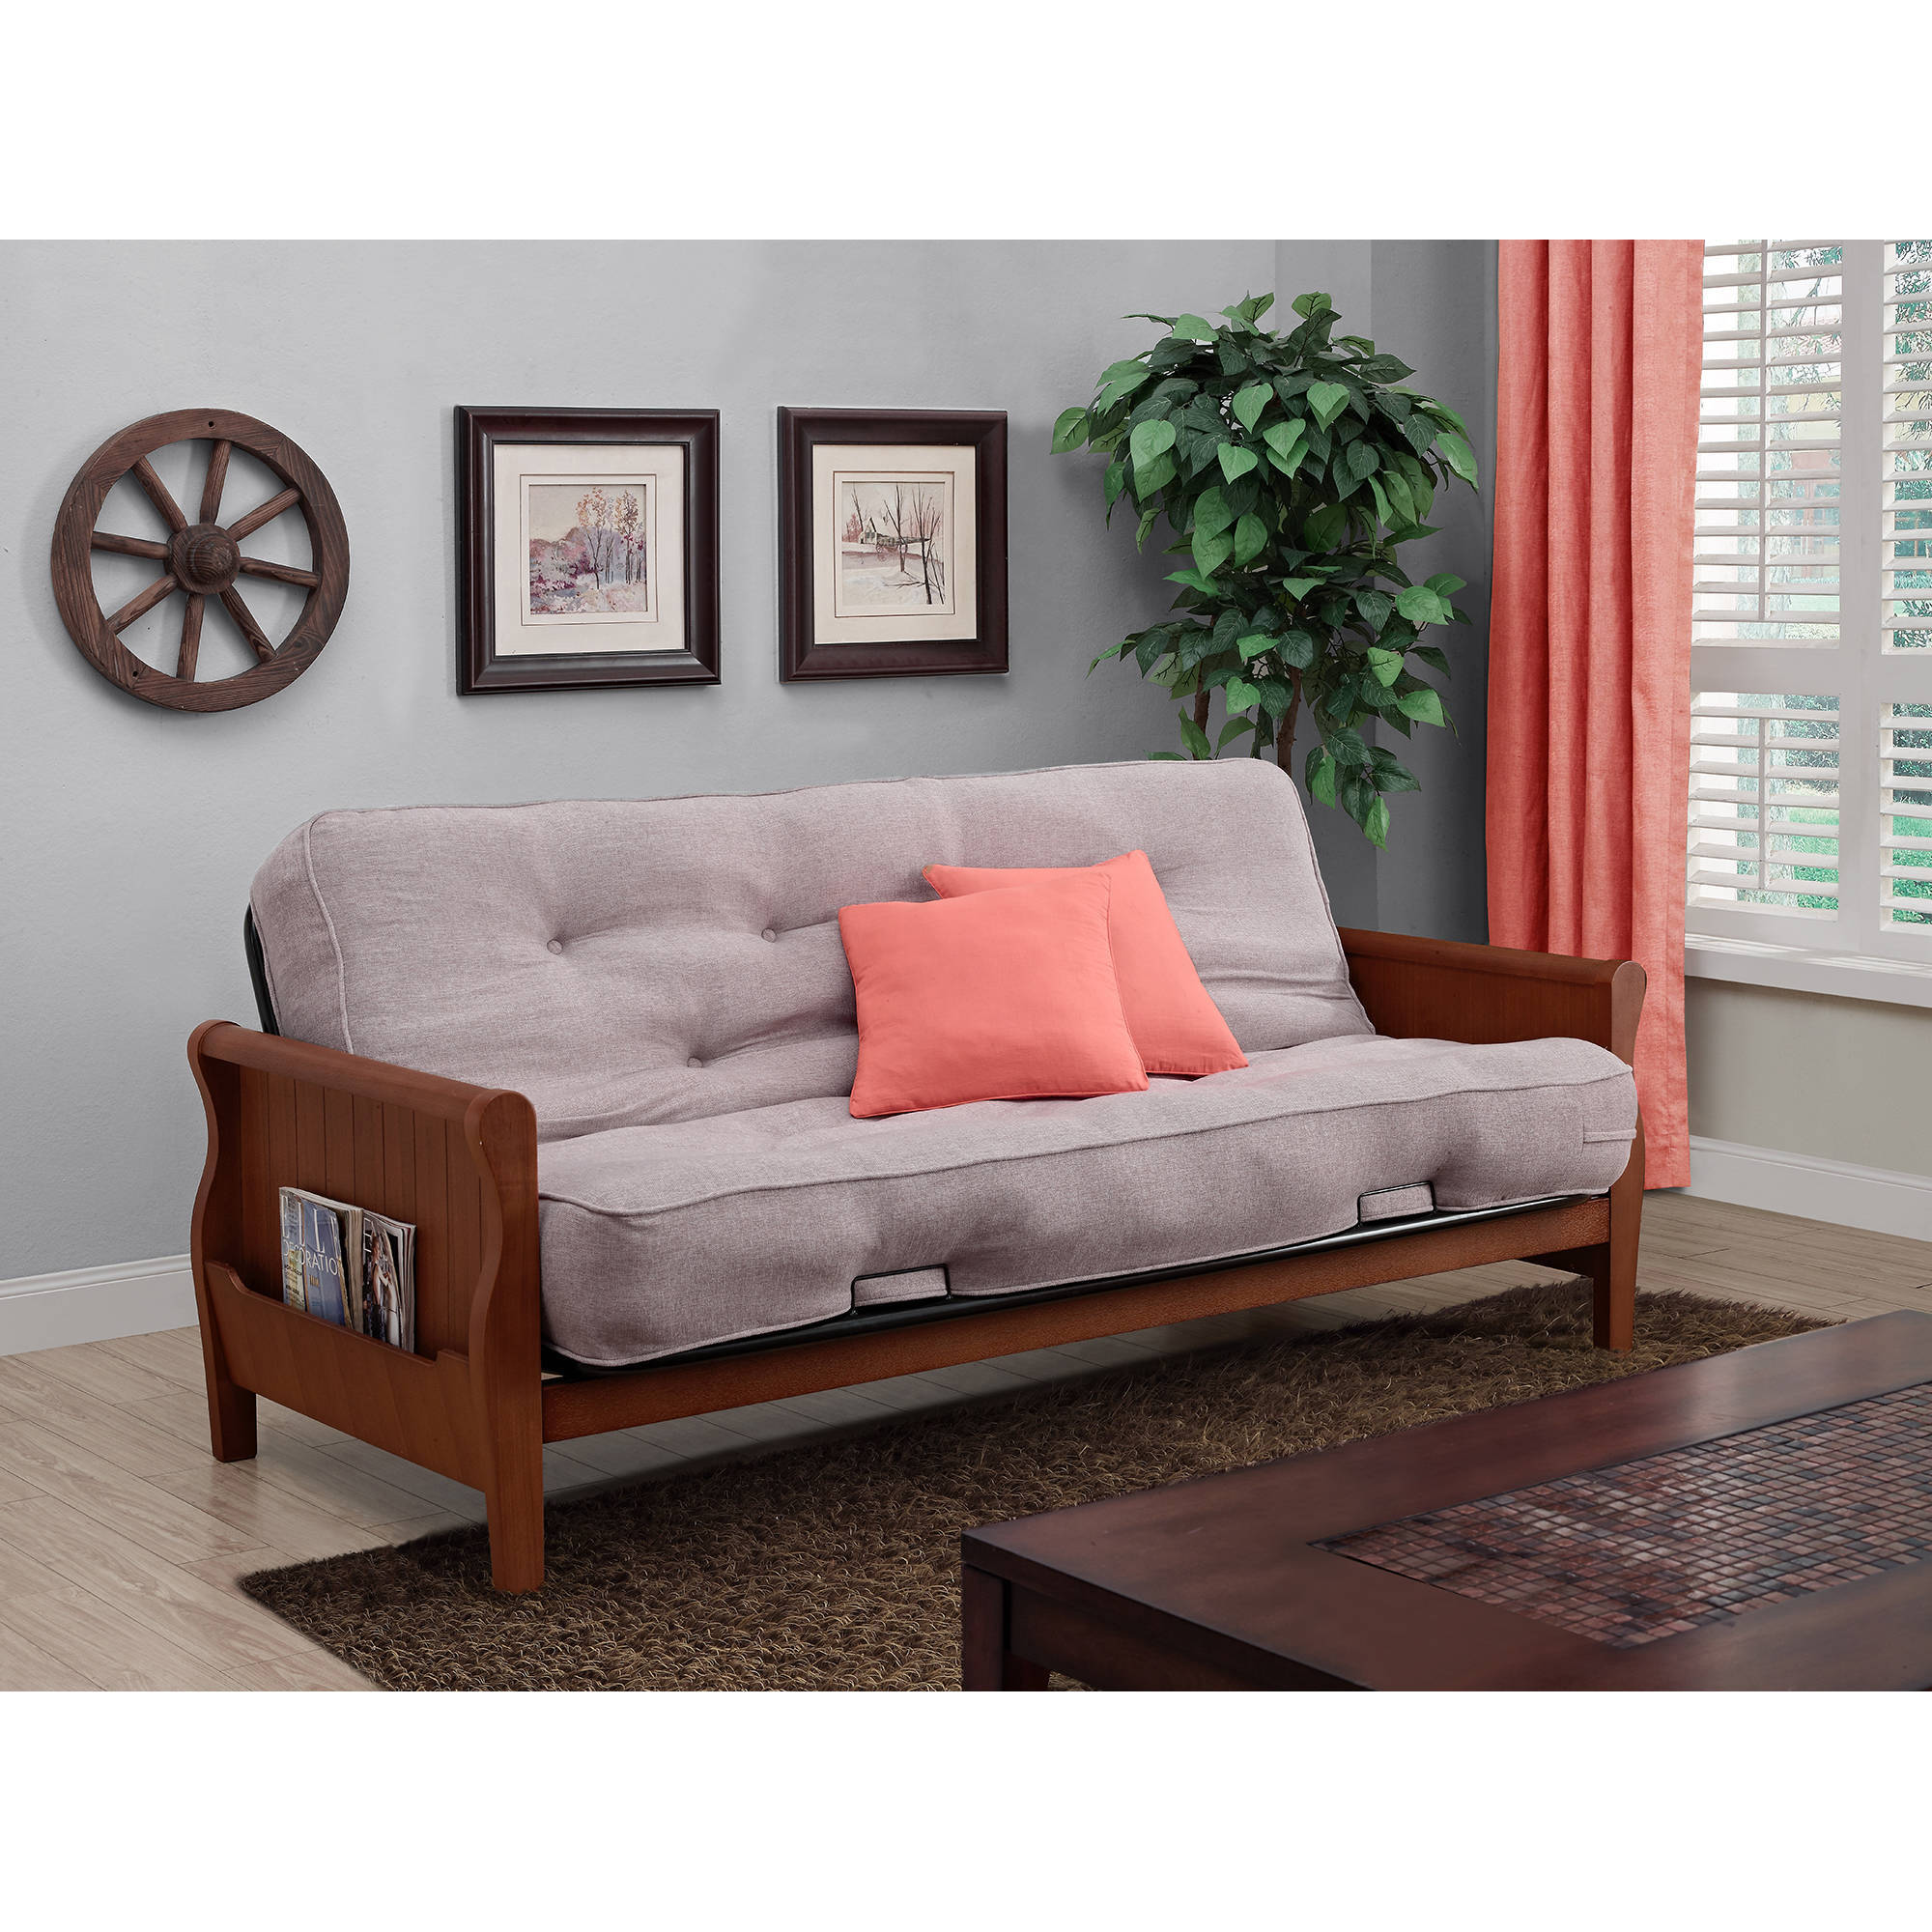 "Better Homes and Gardens Wood Arm Futon With 8"" Coil Mattress, Multiple Colors"